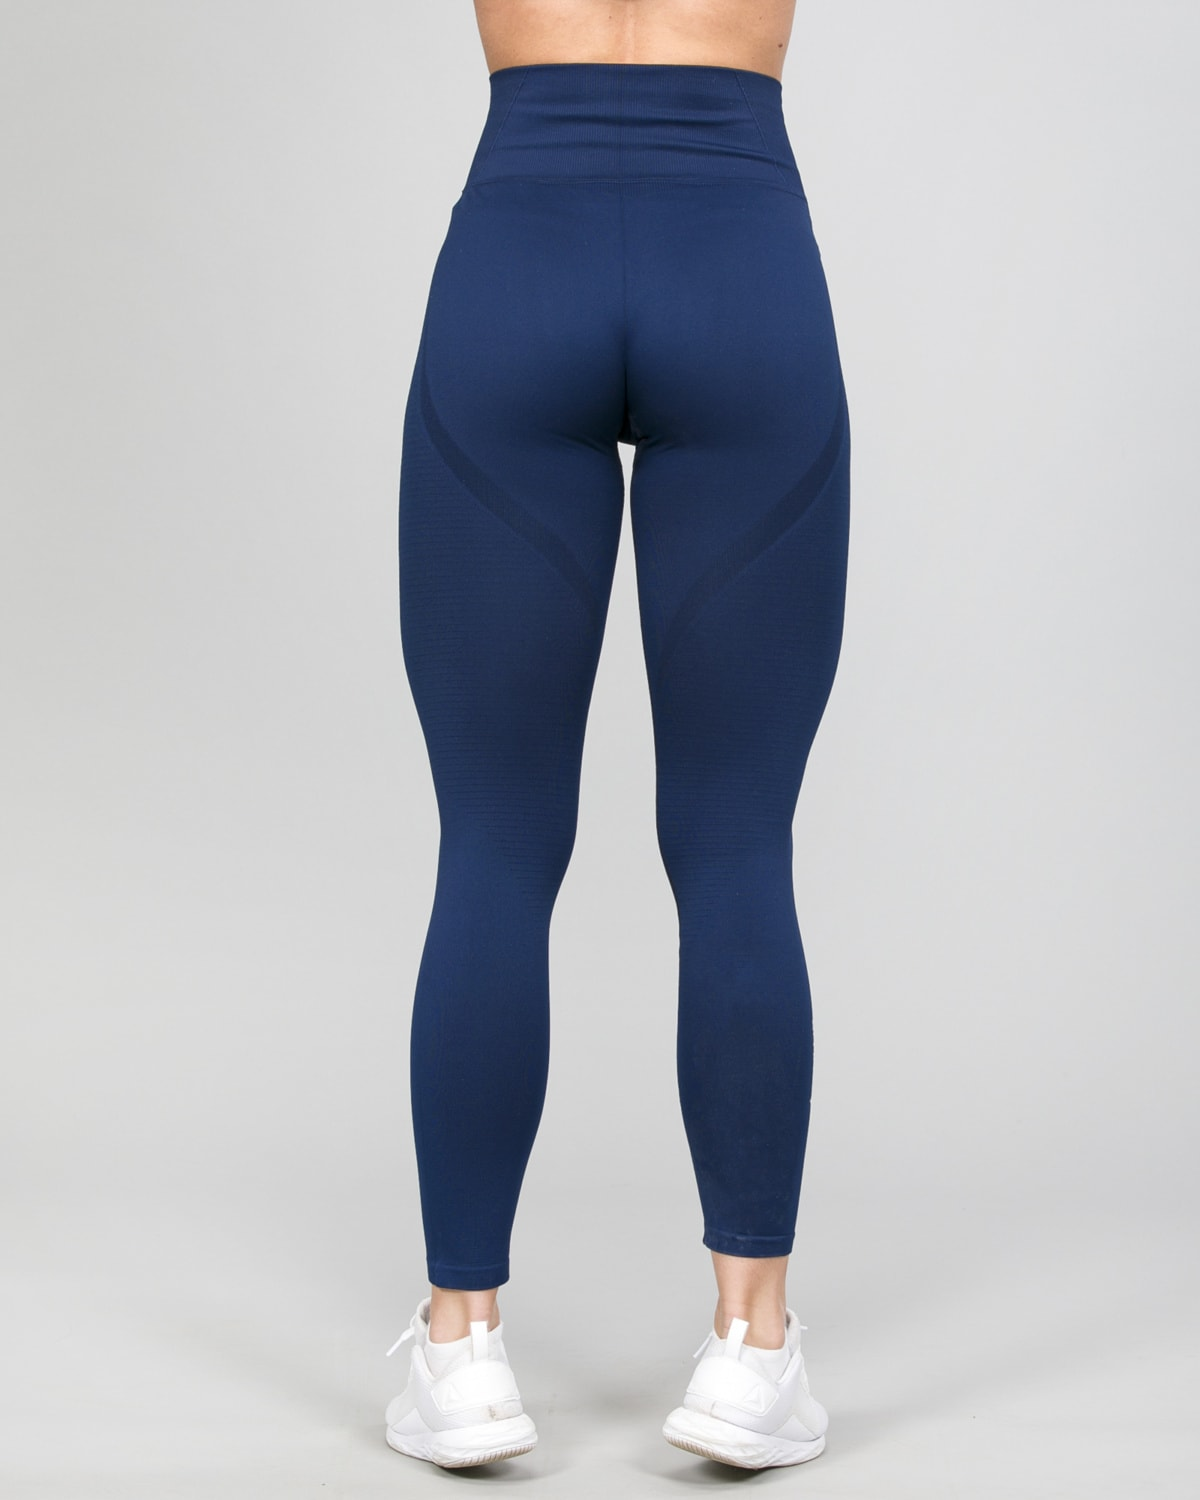 Famme Vortex Legging – Navy Blue vhwl-nv c